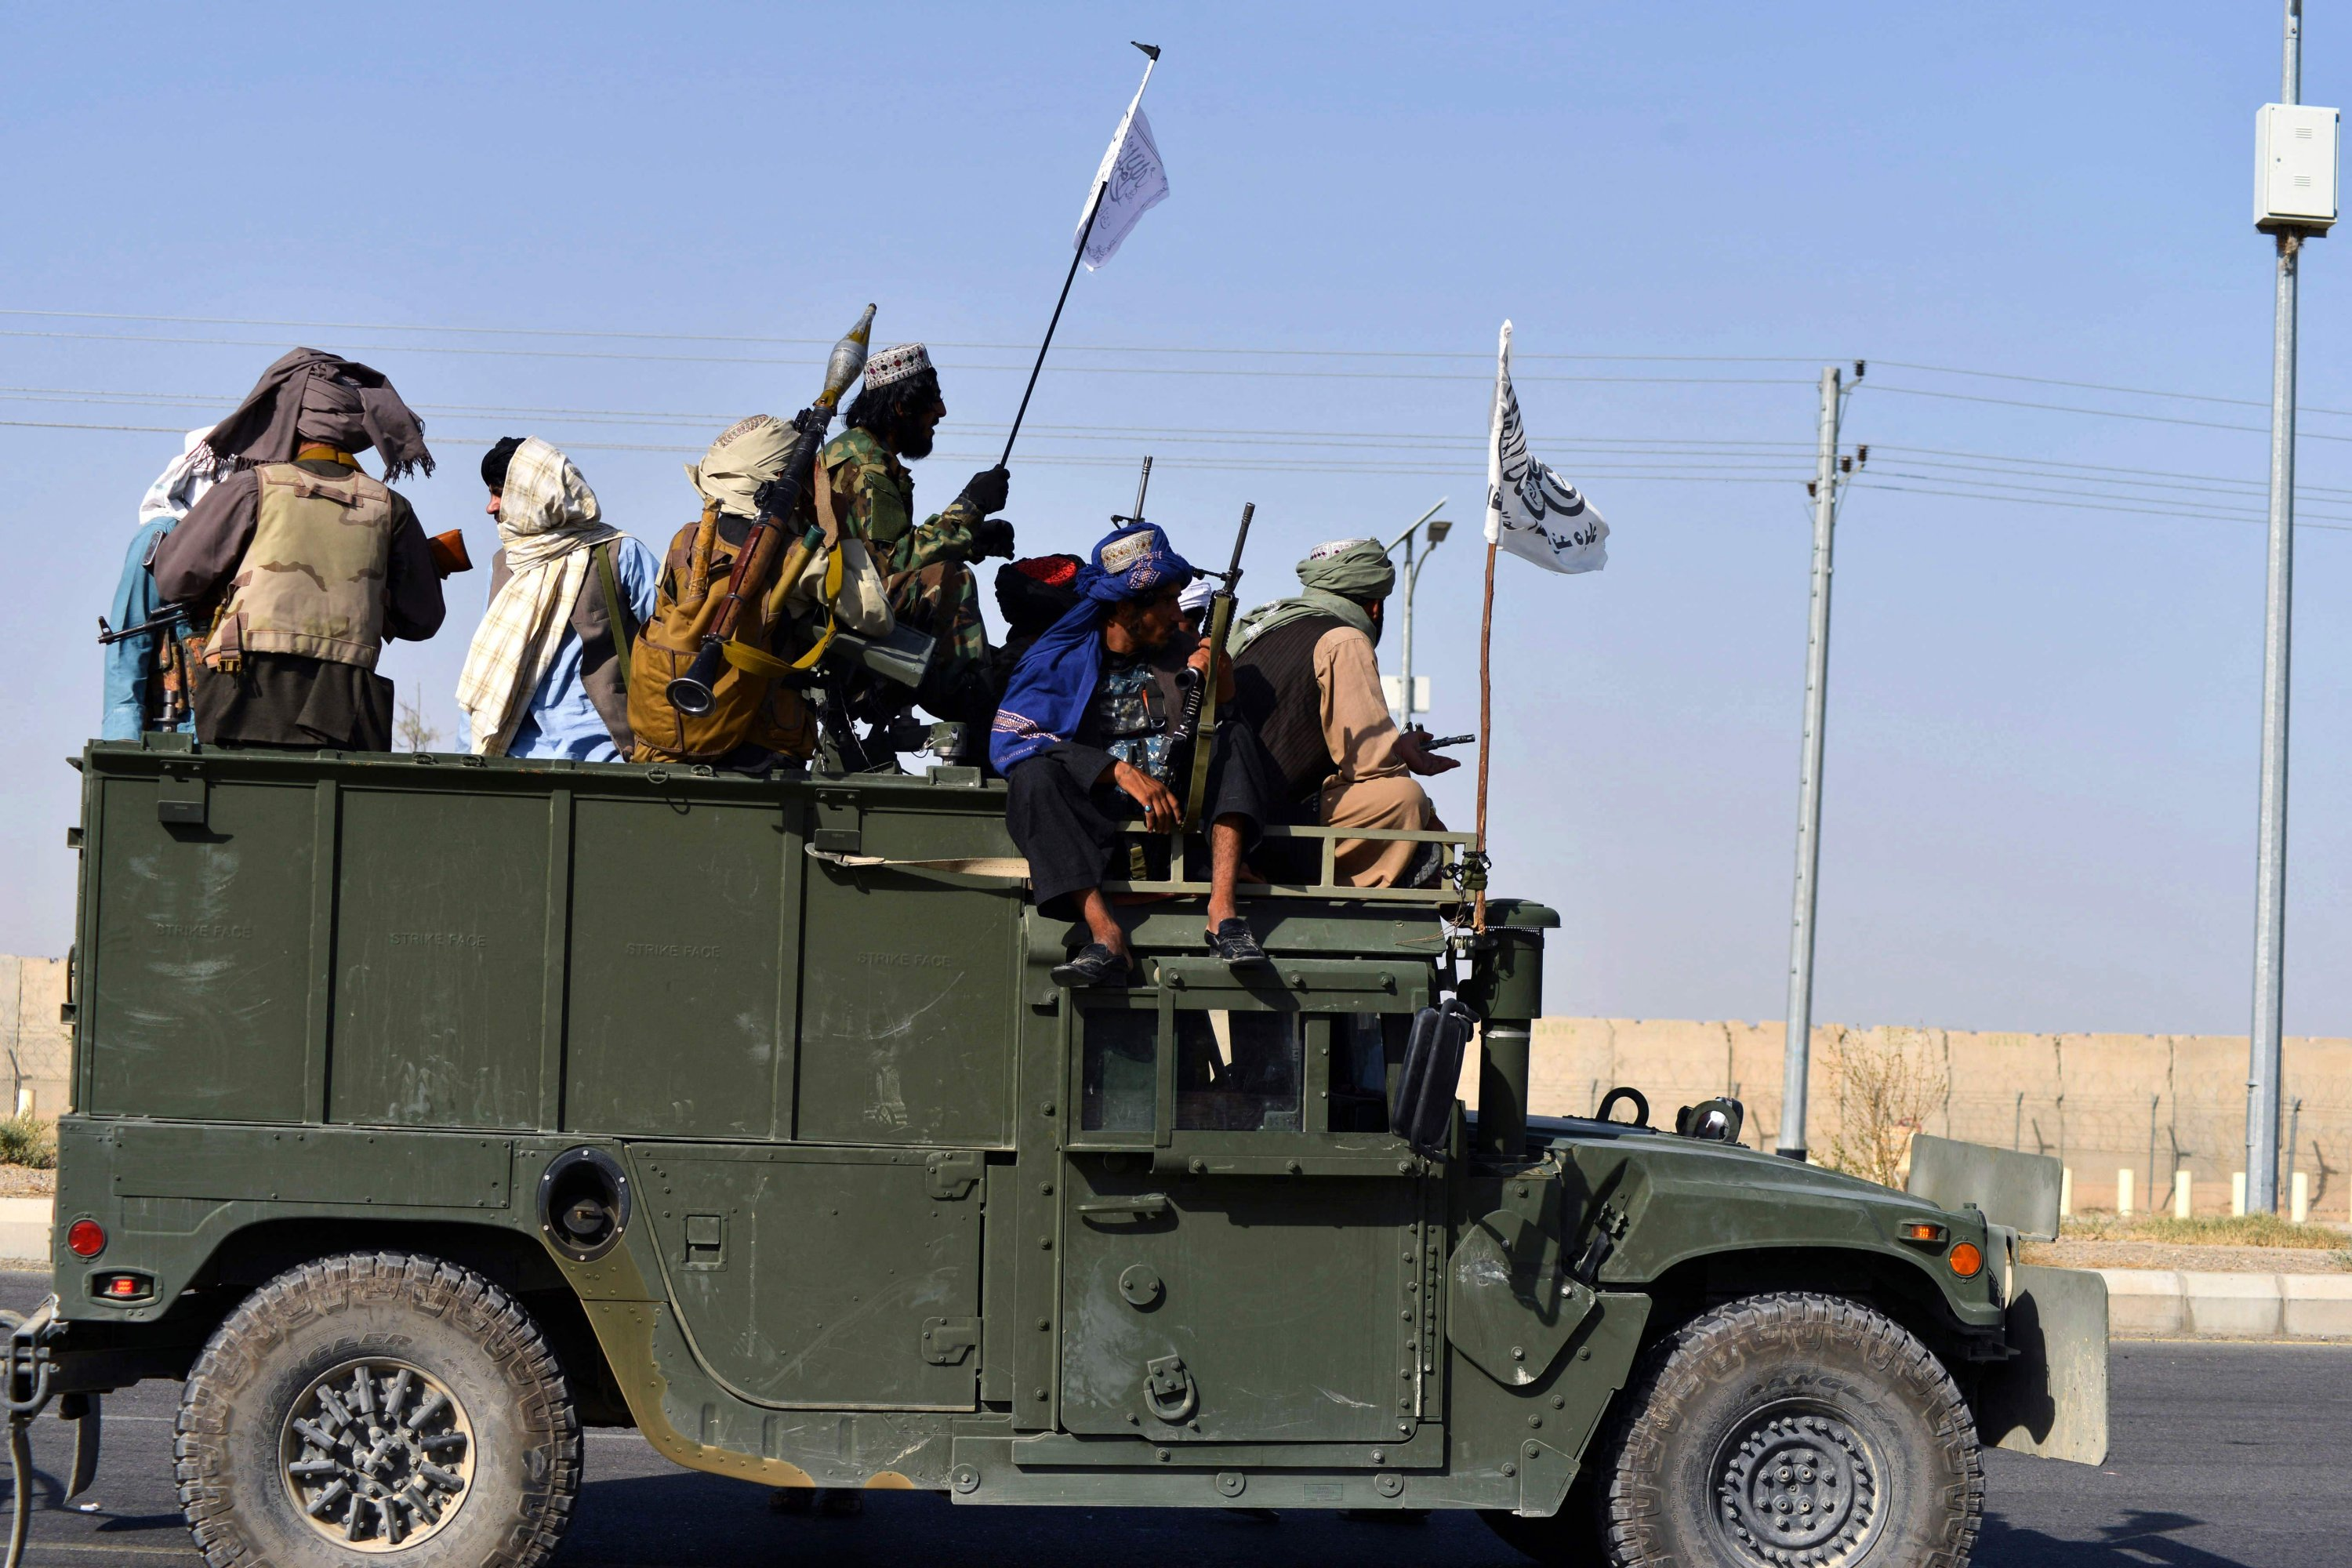 Taliban fighters stand on an armored vehicle before parading along a road to celebrate after the U.S. pulled all its troops out of Afghanistan, in Kandahar, Afghanistan, Sept. 1, 2021. (Photo by Javed Tanveer via AFP)